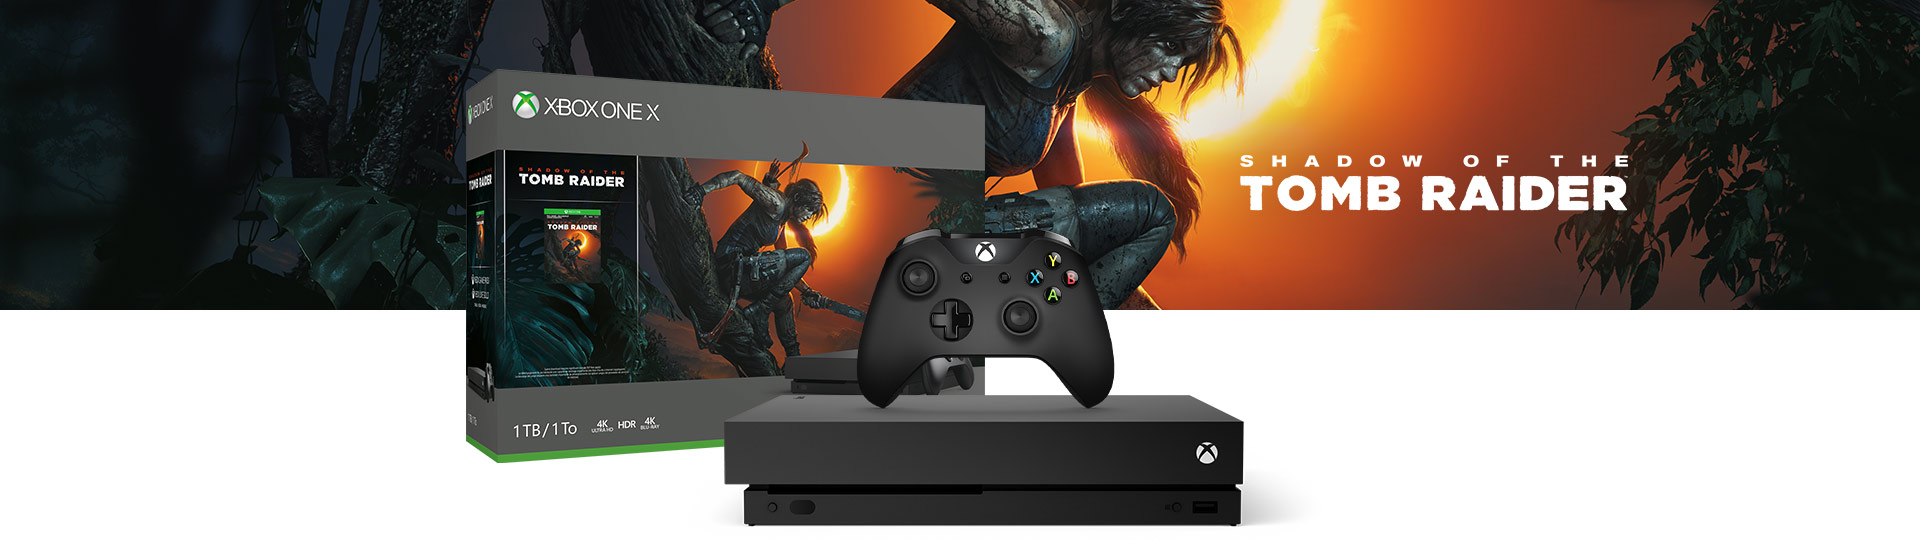 Xbox One X y mando, junto a una caja de producto Xbox One X Shadow of the Tomb Raider 1 TB